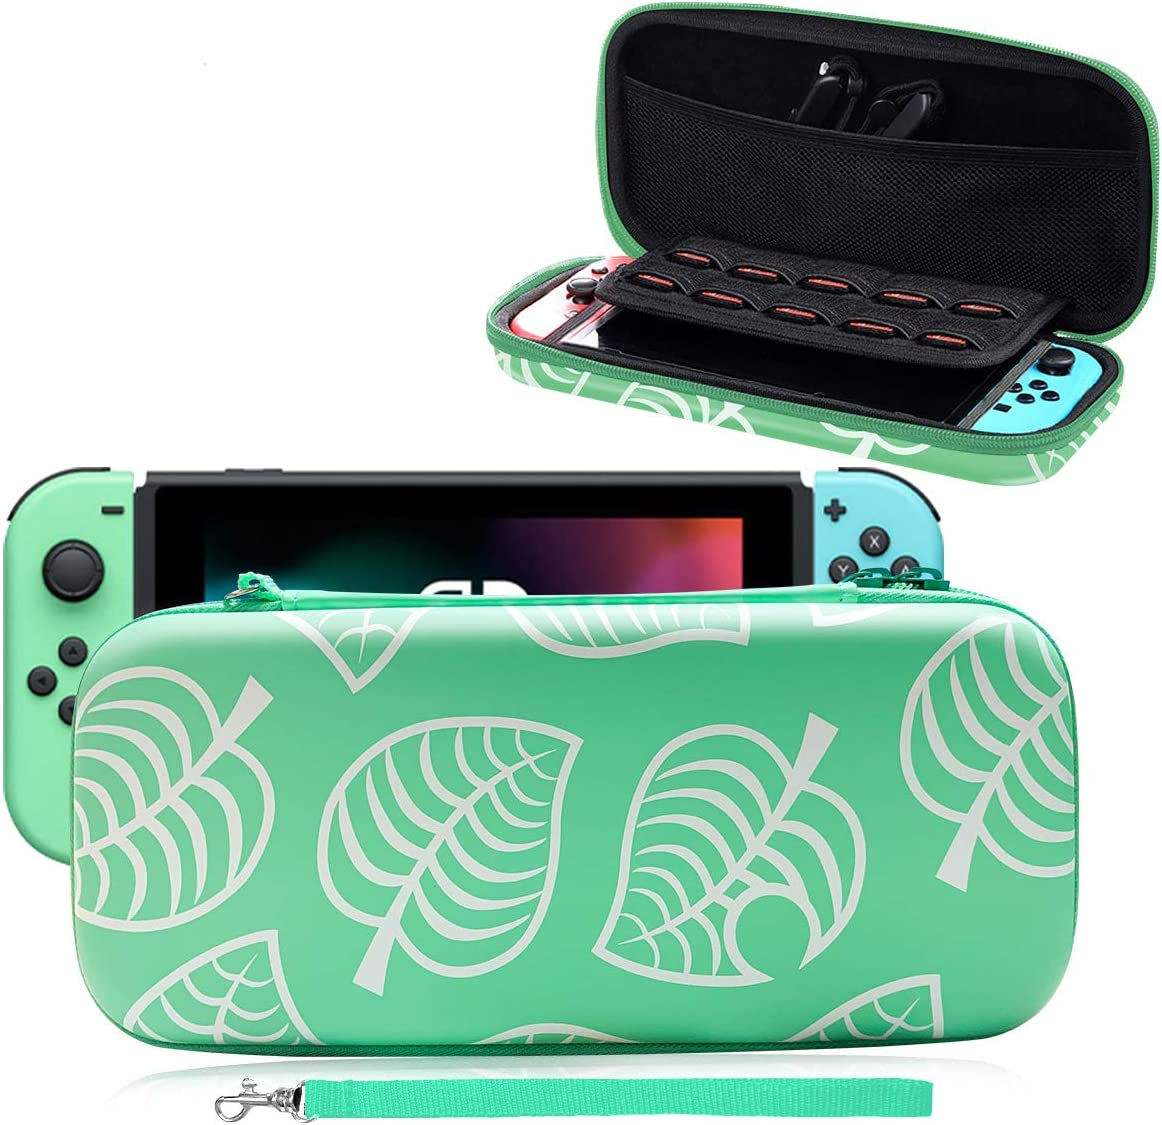 Carrying Case for Nintendo Switch,[New Horizons Edition] New Leaf Crossing Full Protective Carrying Case for Switch, Portable Travel Carry Case Bag for Nintendo Switch - Blue-Green